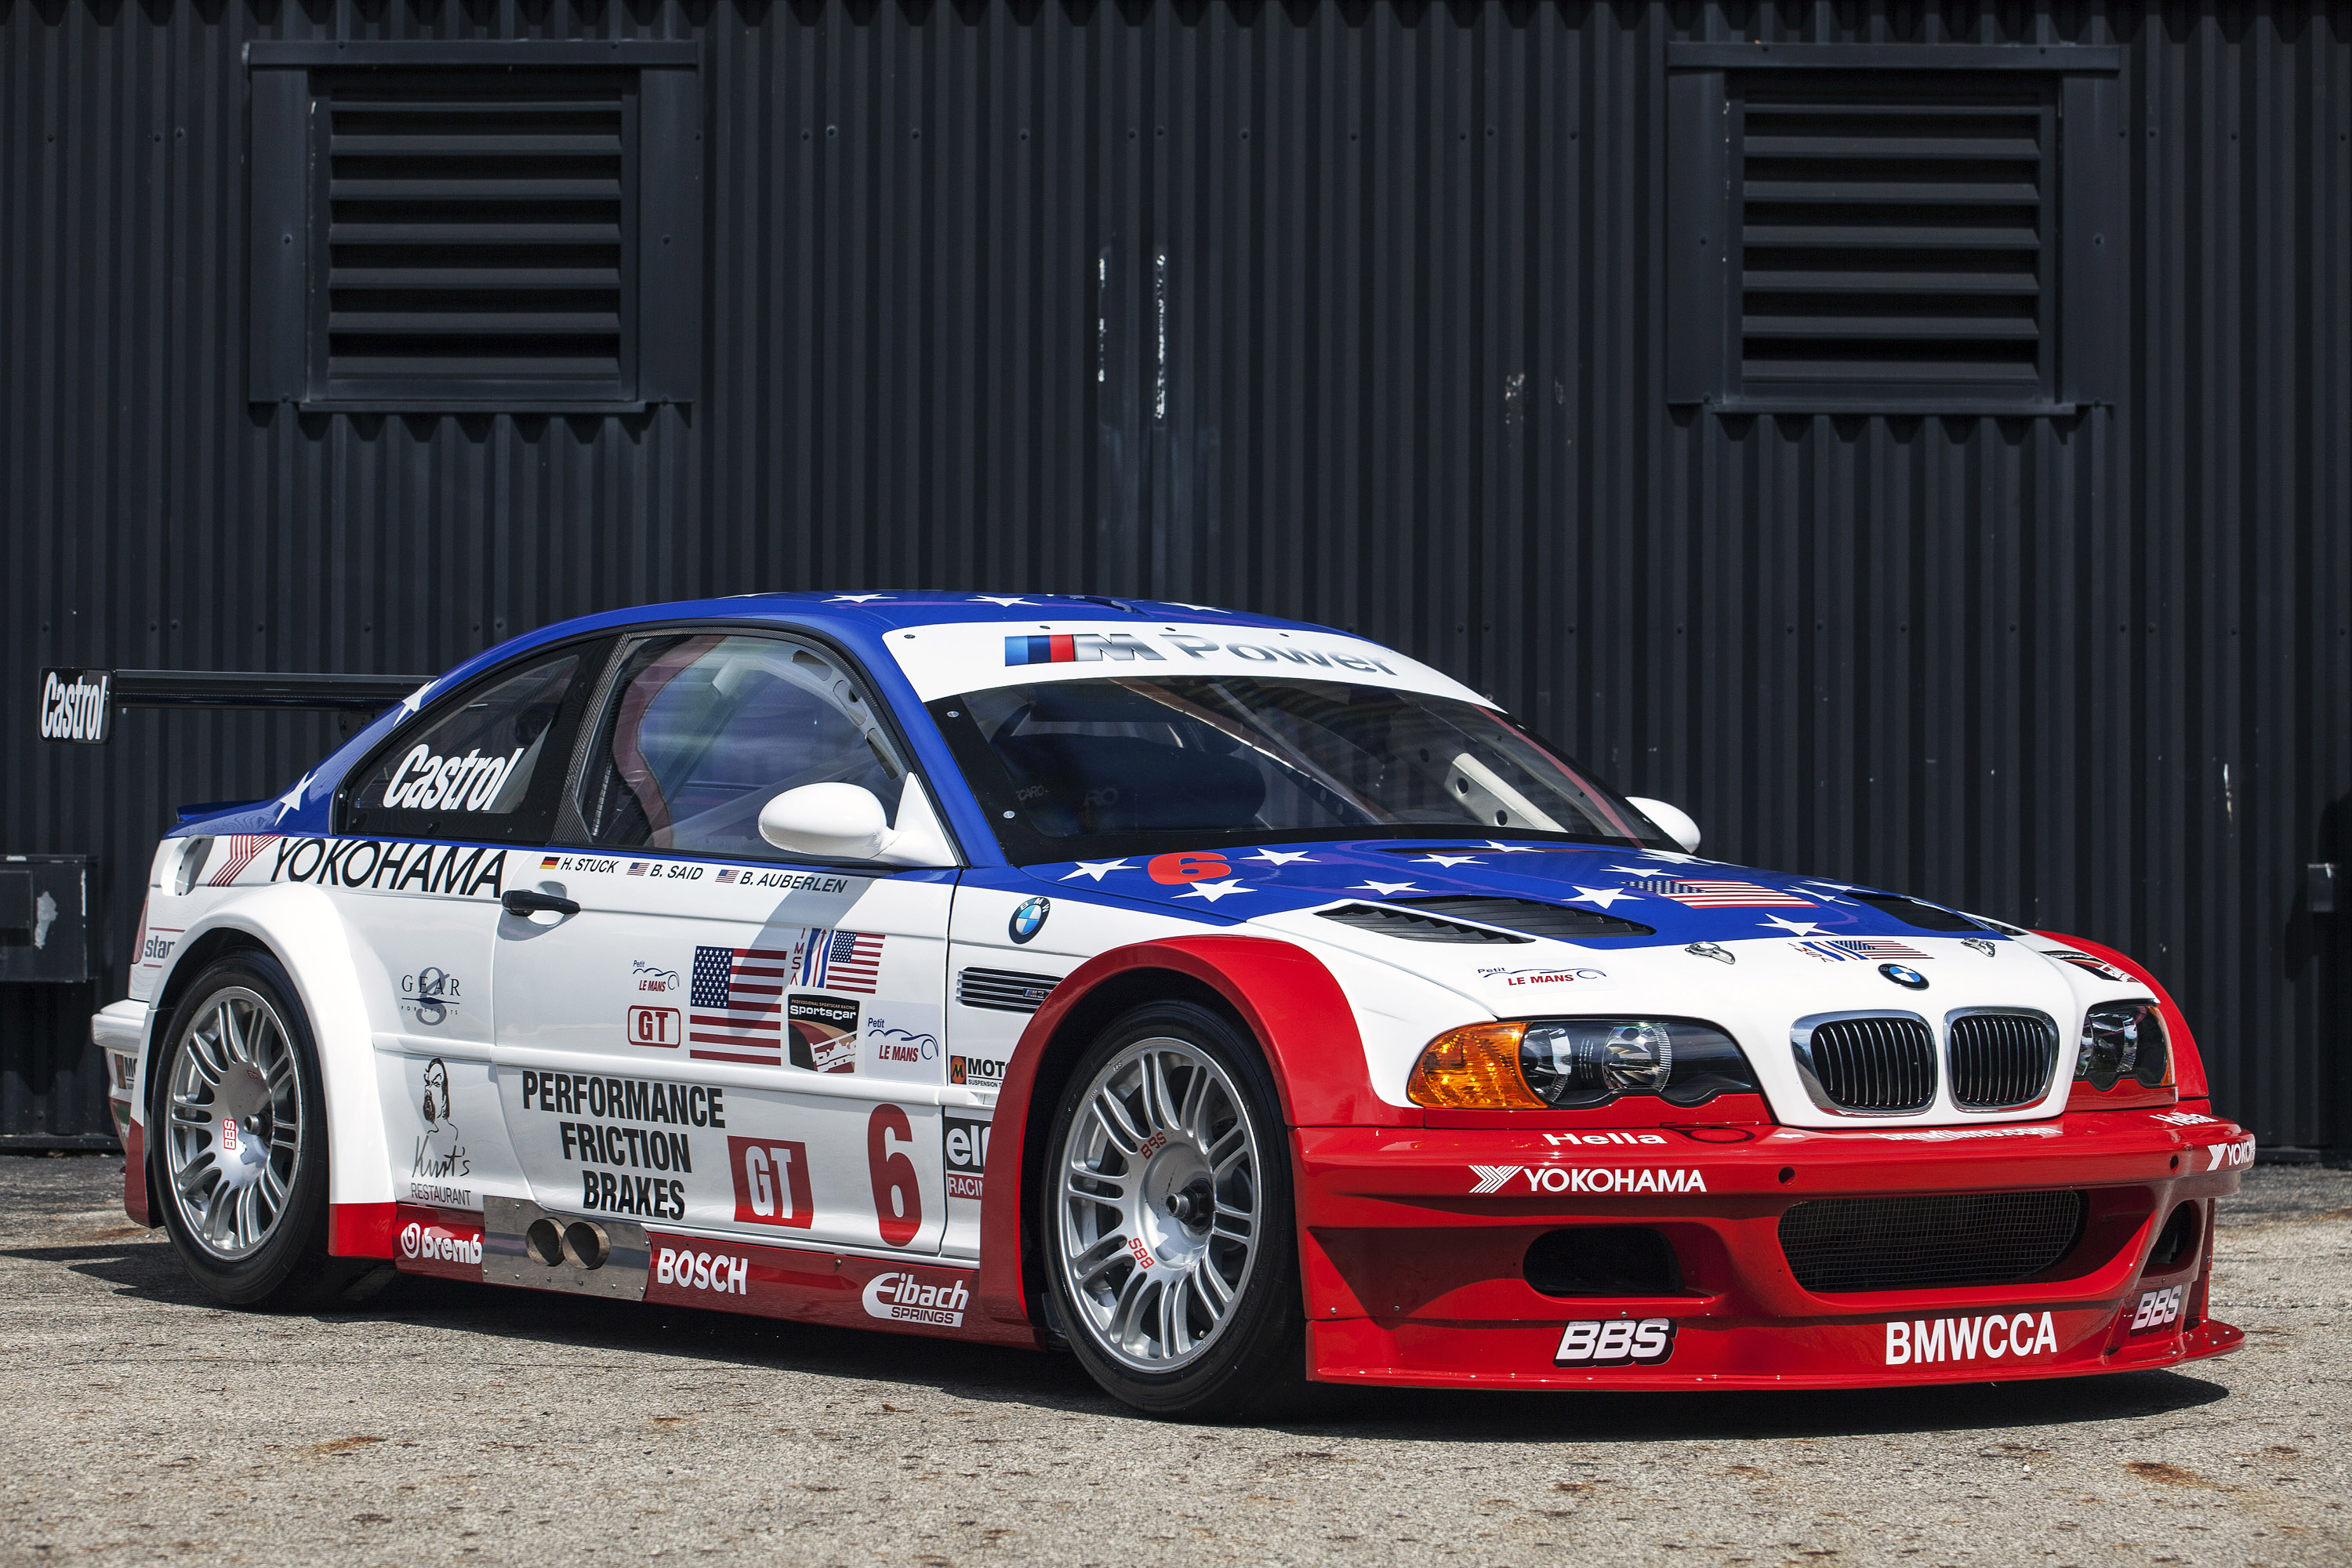 2015 bmw e46 m3 gtr restored picture 124105. Black Bedroom Furniture Sets. Home Design Ideas